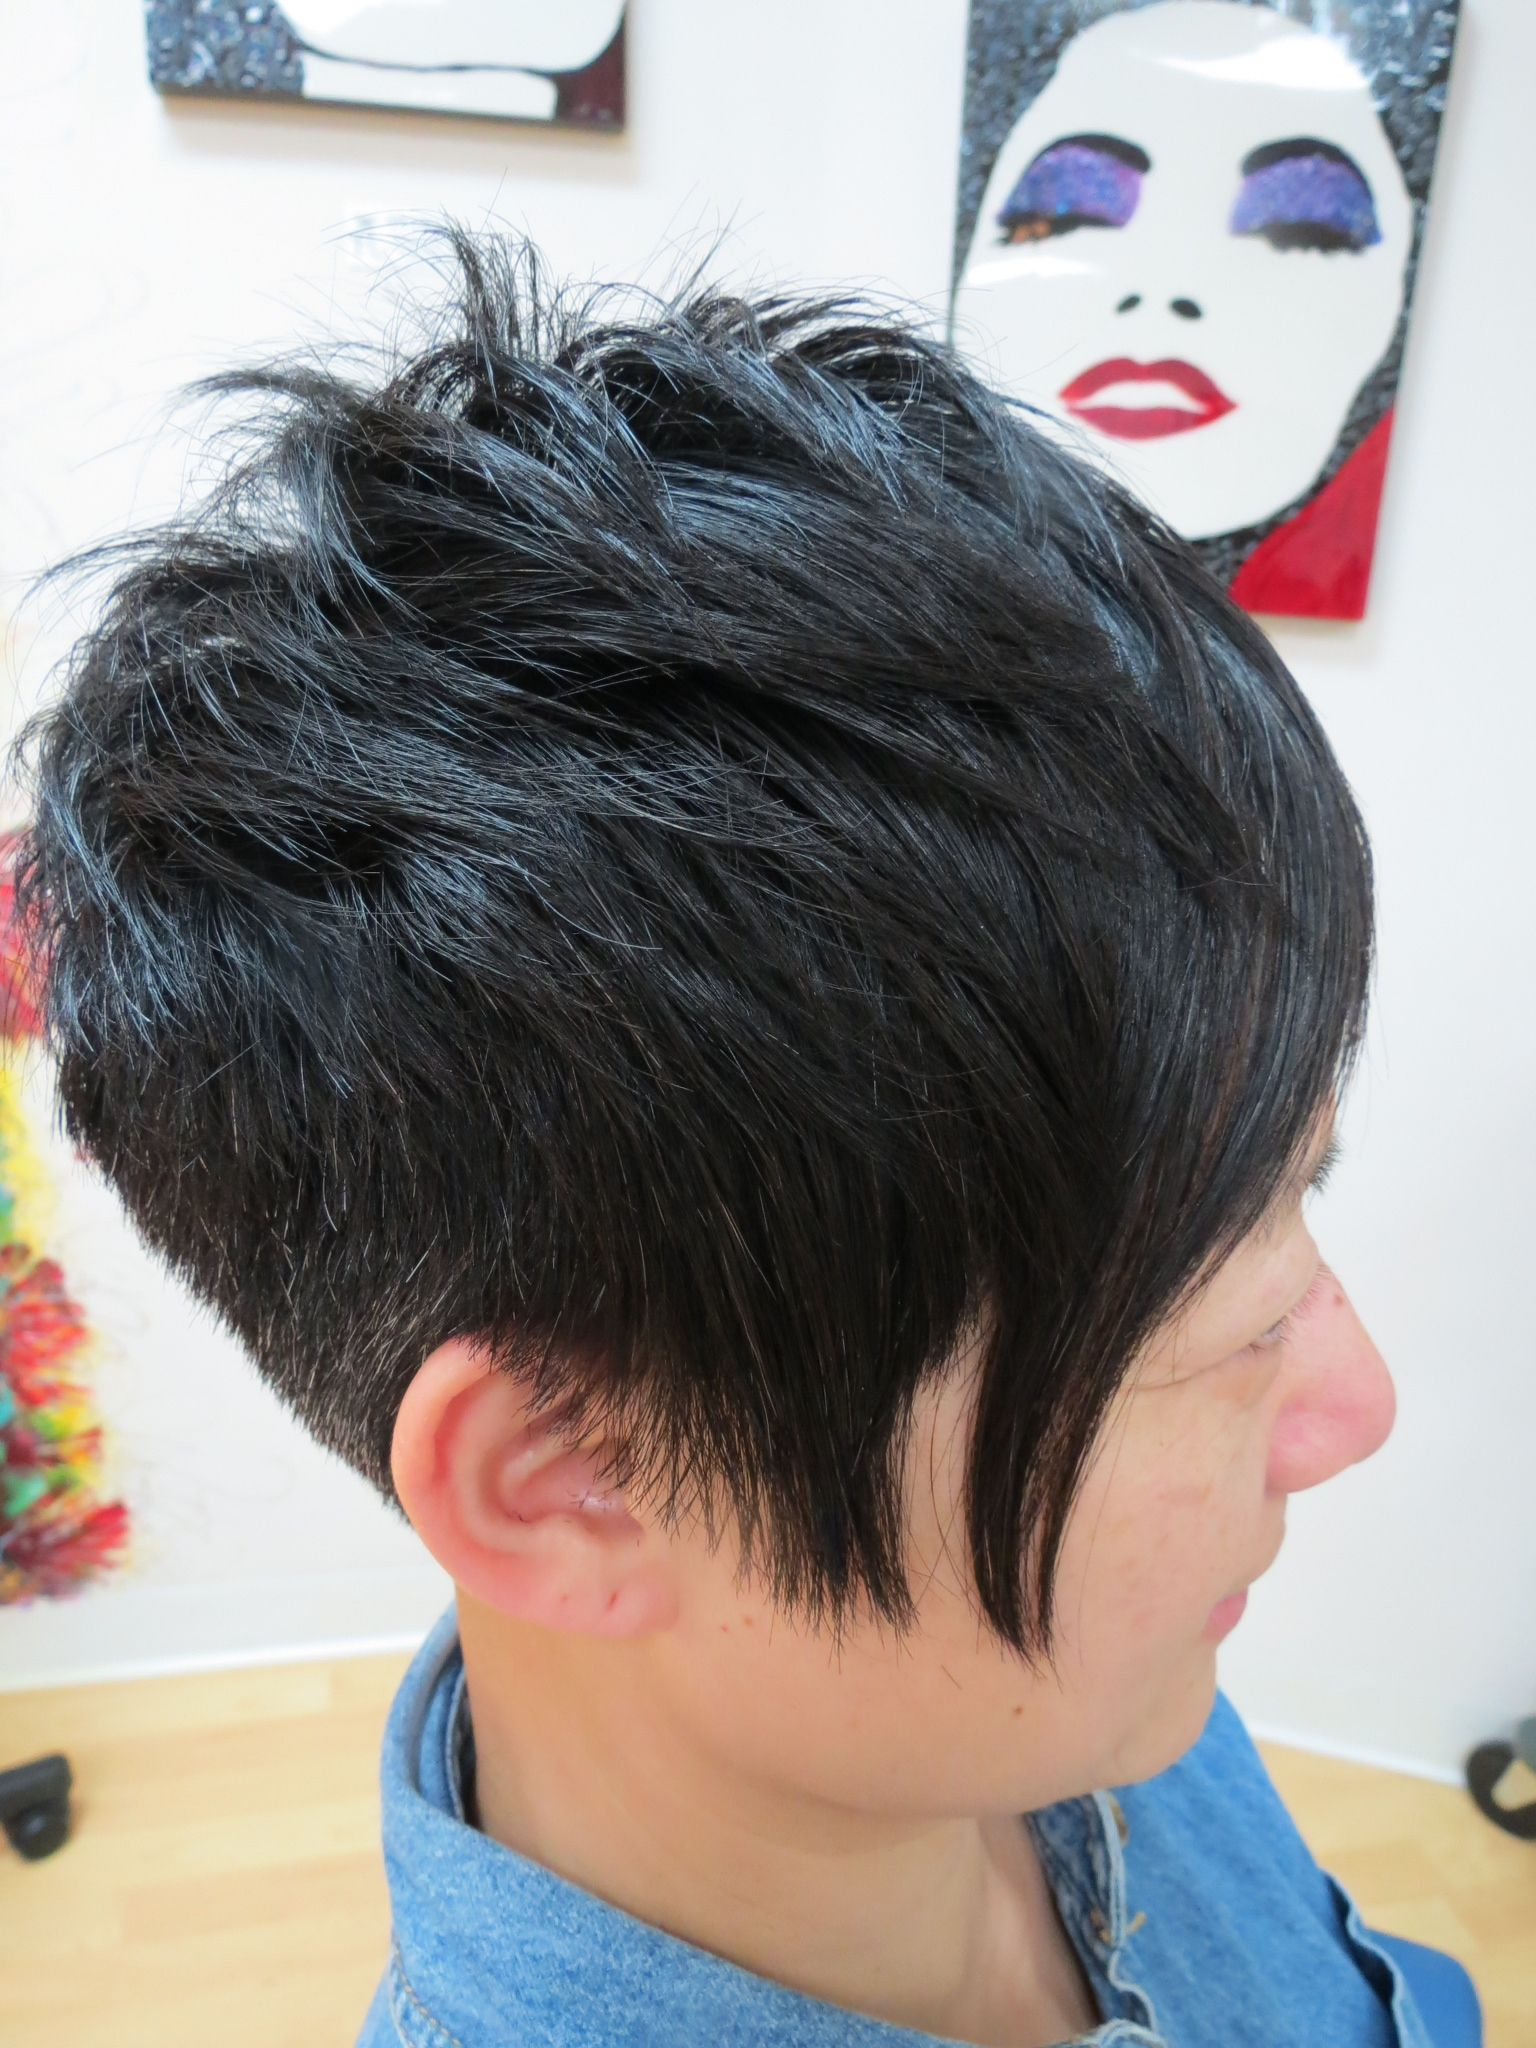 Texture and softness on coarse hair